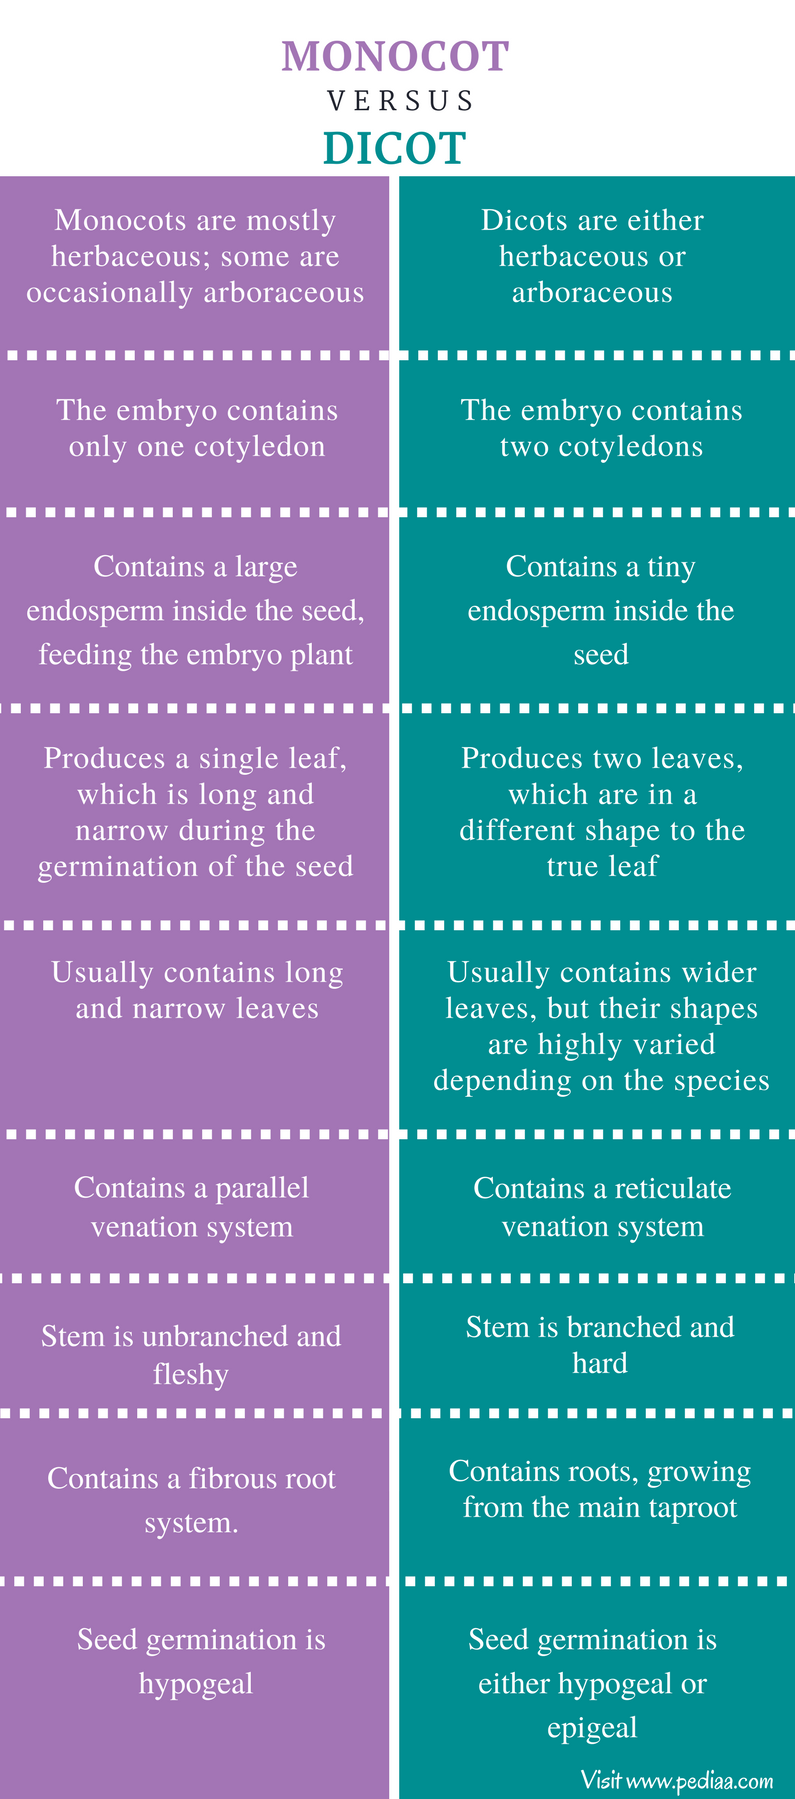 Difference Between Monocot and Dicot - Comparison Summary